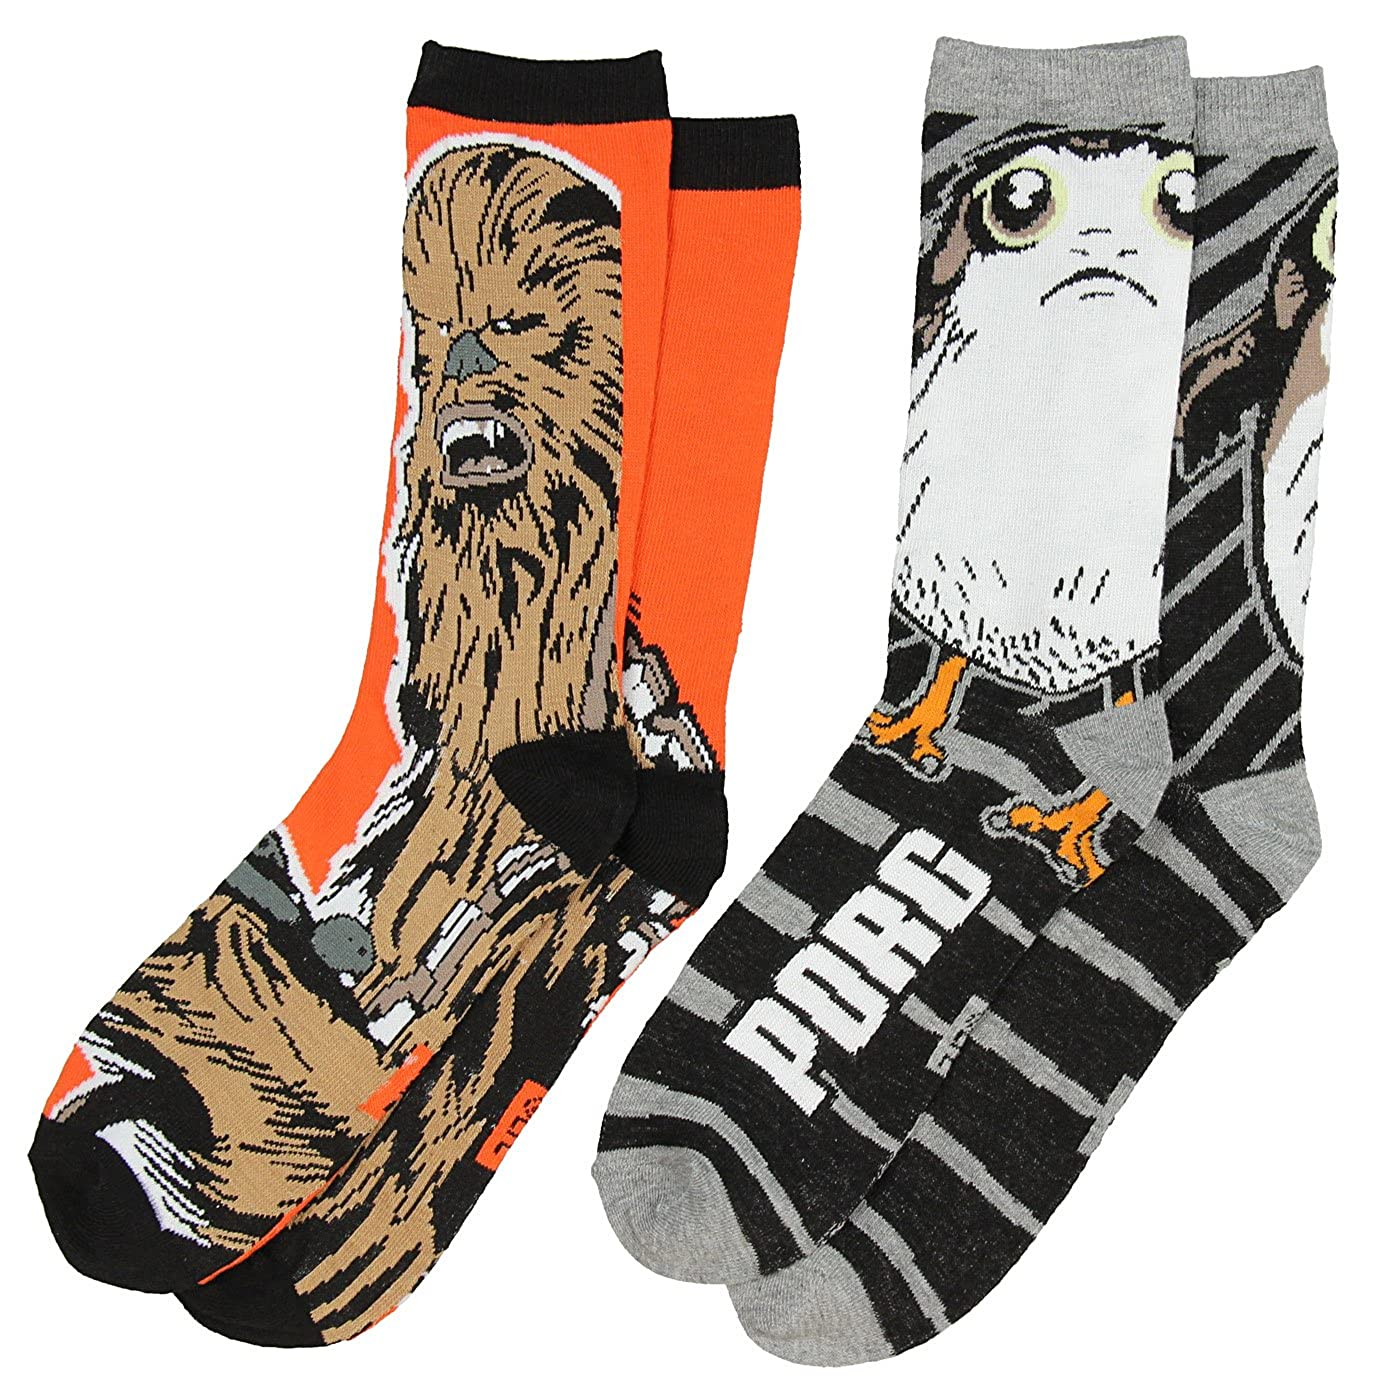 Hyp Star Wars Porg and Chewbacca Men's Crew Socks 2 Pair Pack Shoe Size 6-12 IN1203